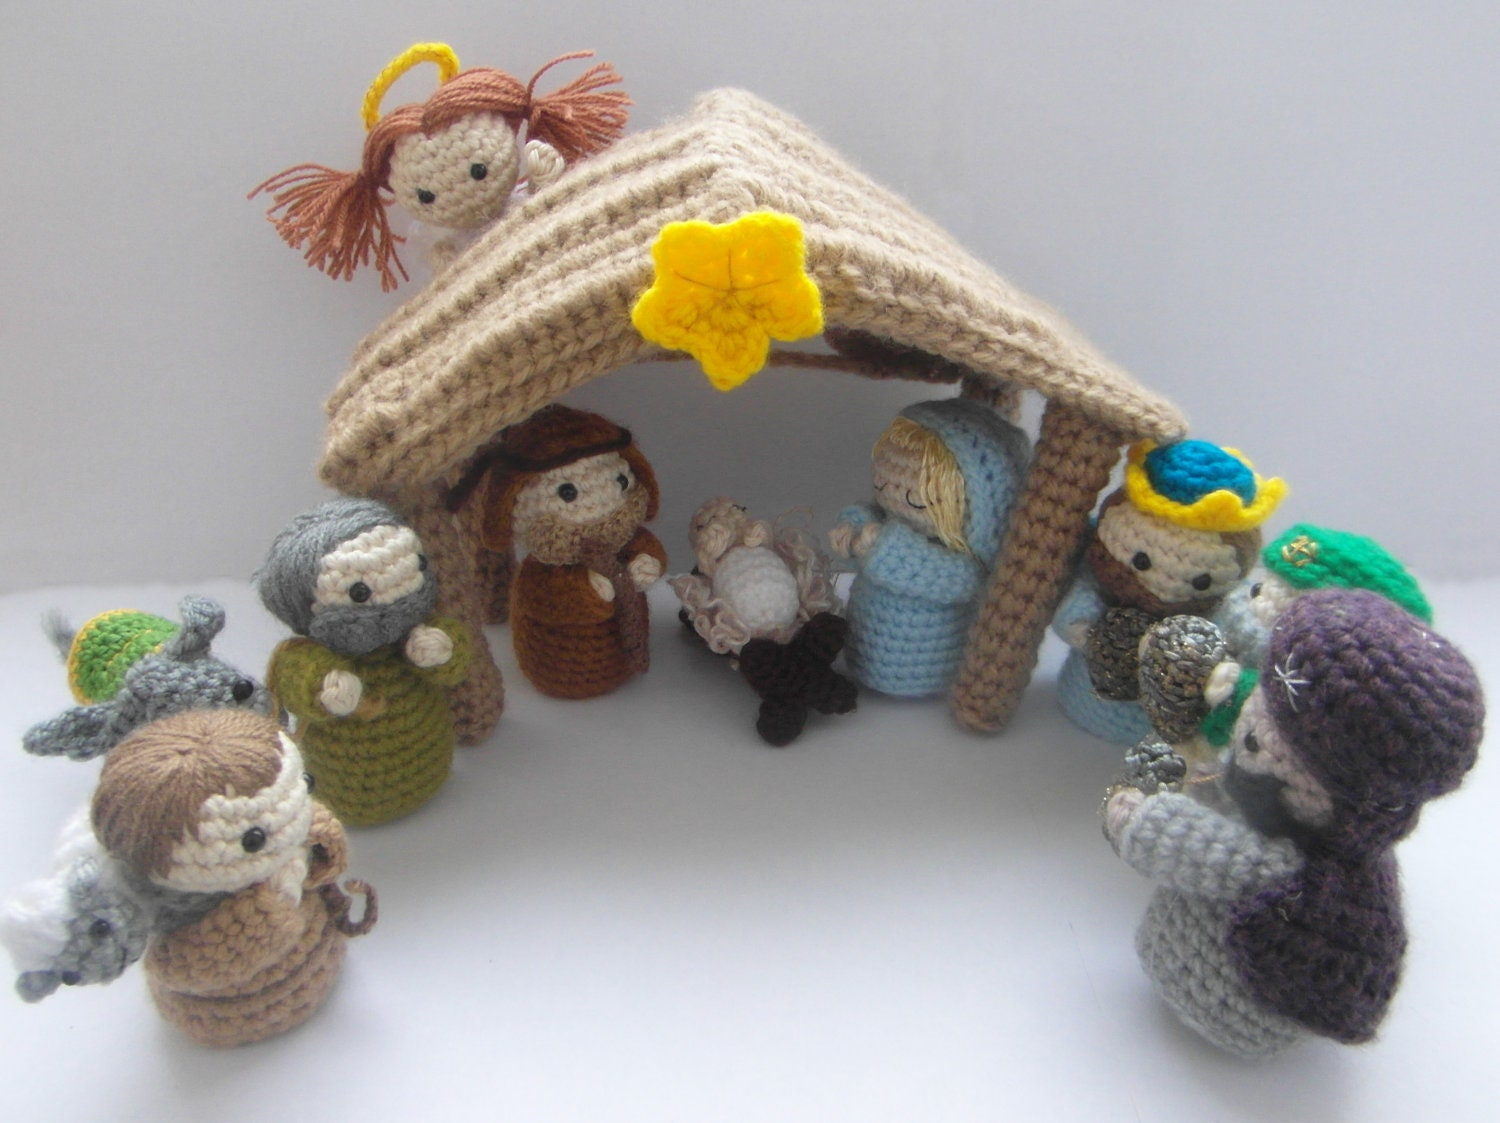 Free Crochet Patterns Nativity Scene : Items similar to Amigurumi Nativity Scene - crochet ...